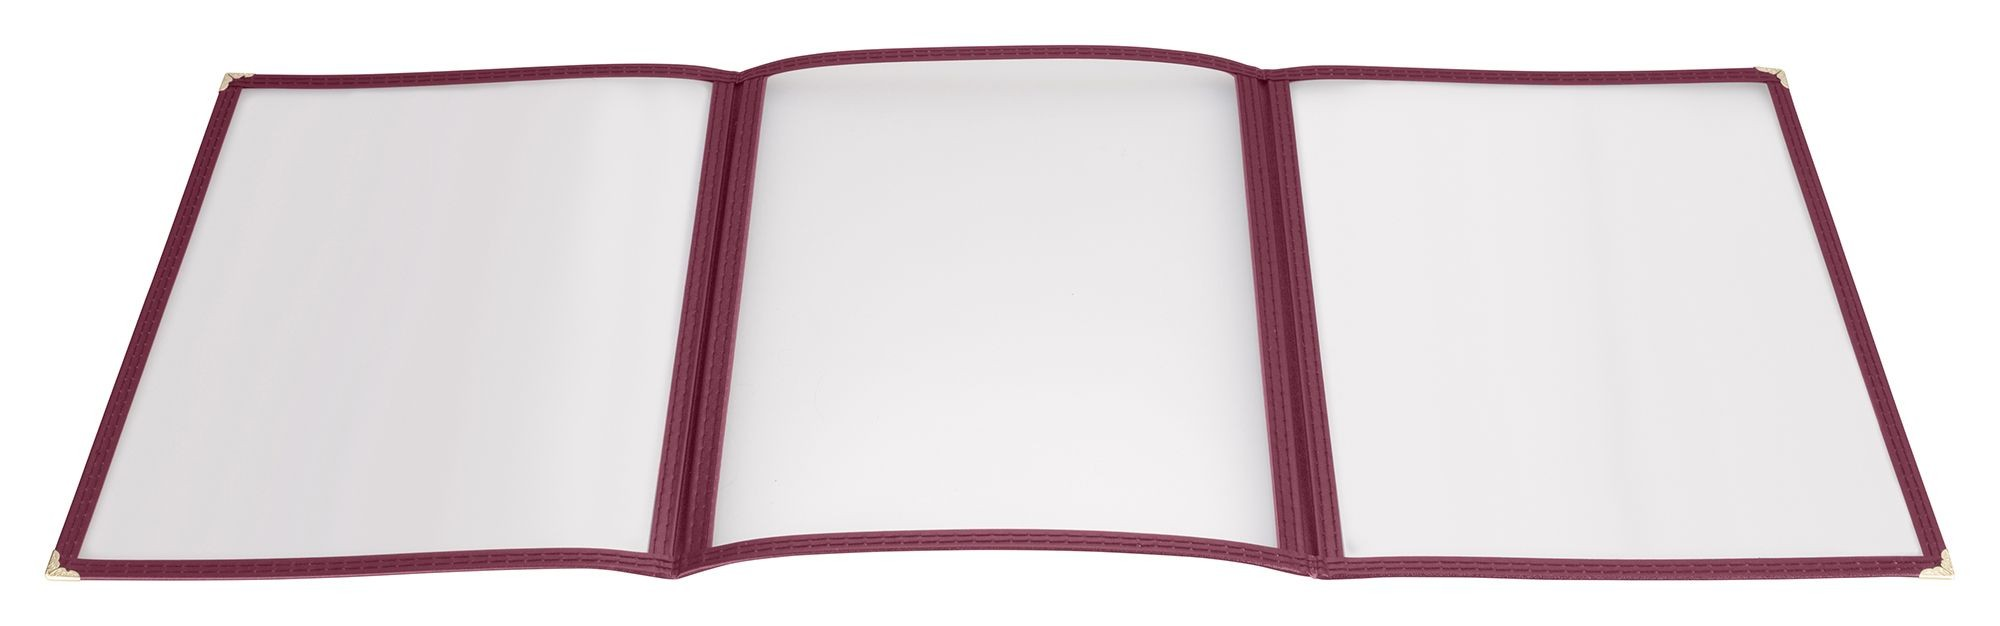 "Winco PMCT-9U Burgundy Triple Fold Menu Cover 9-1/2"" x 12"""